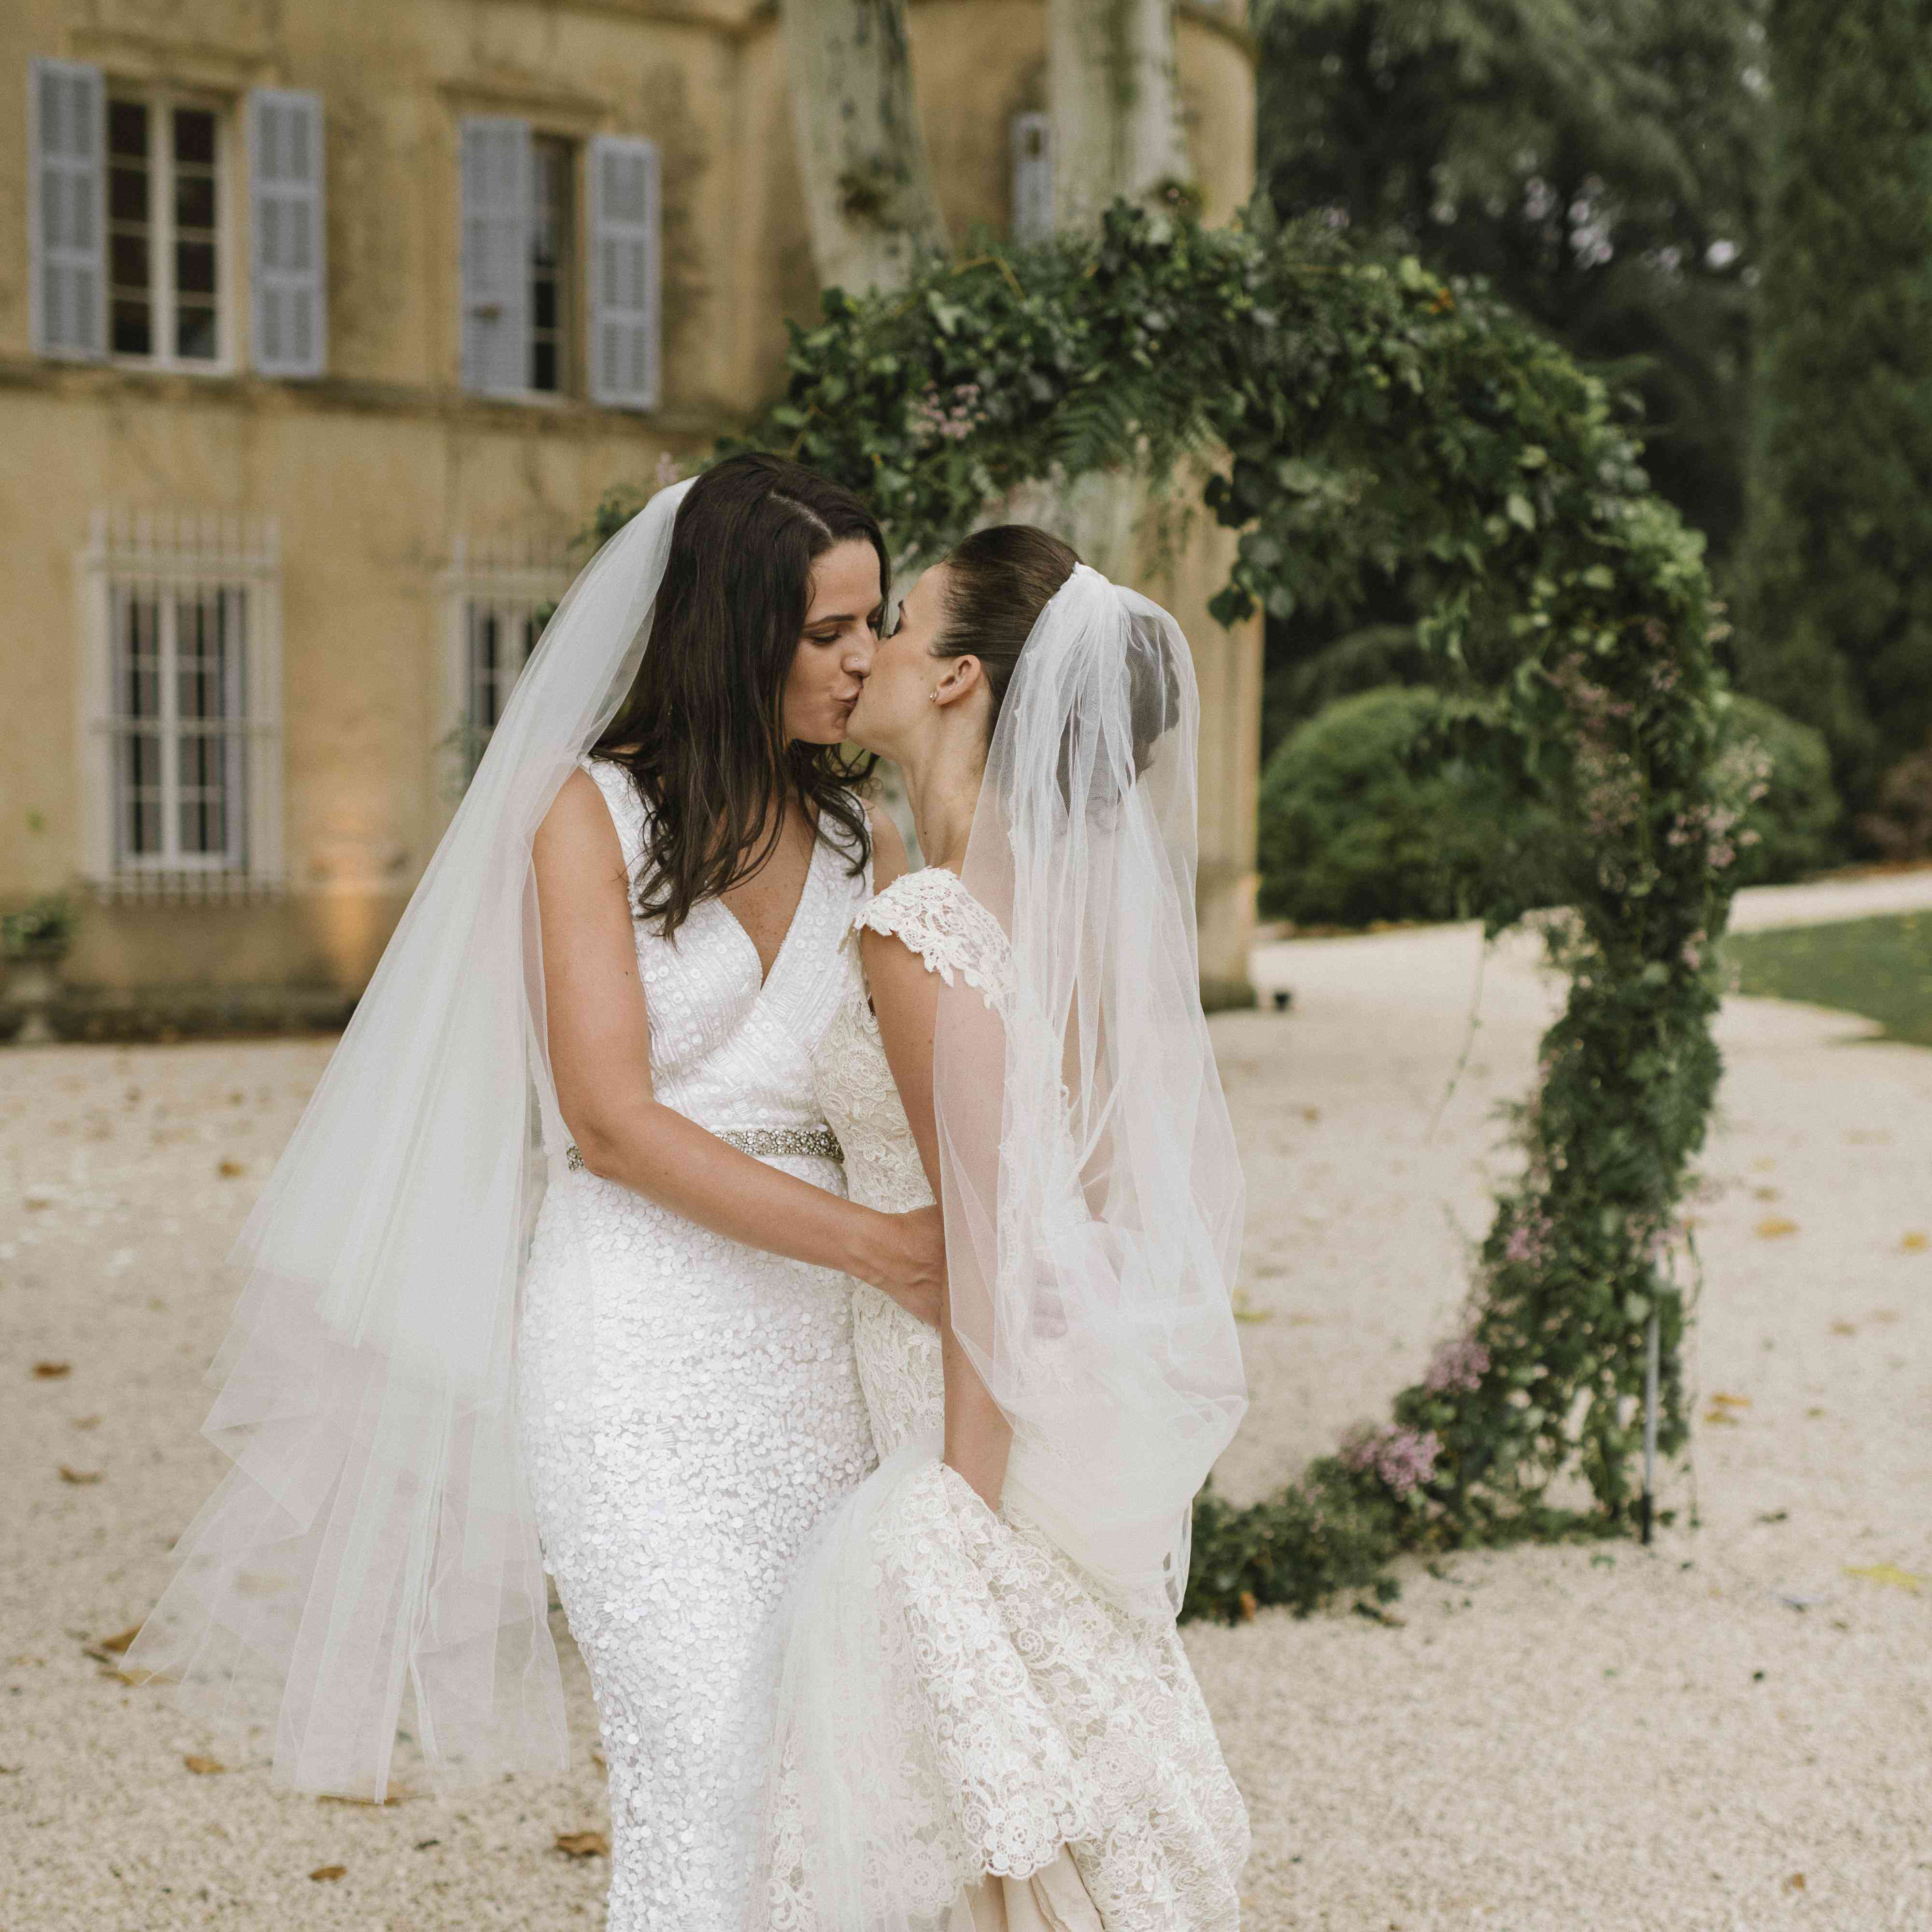 Story Most Romantic Wedding Songs: A Romantic Wedding At A Chateau In The South Of France